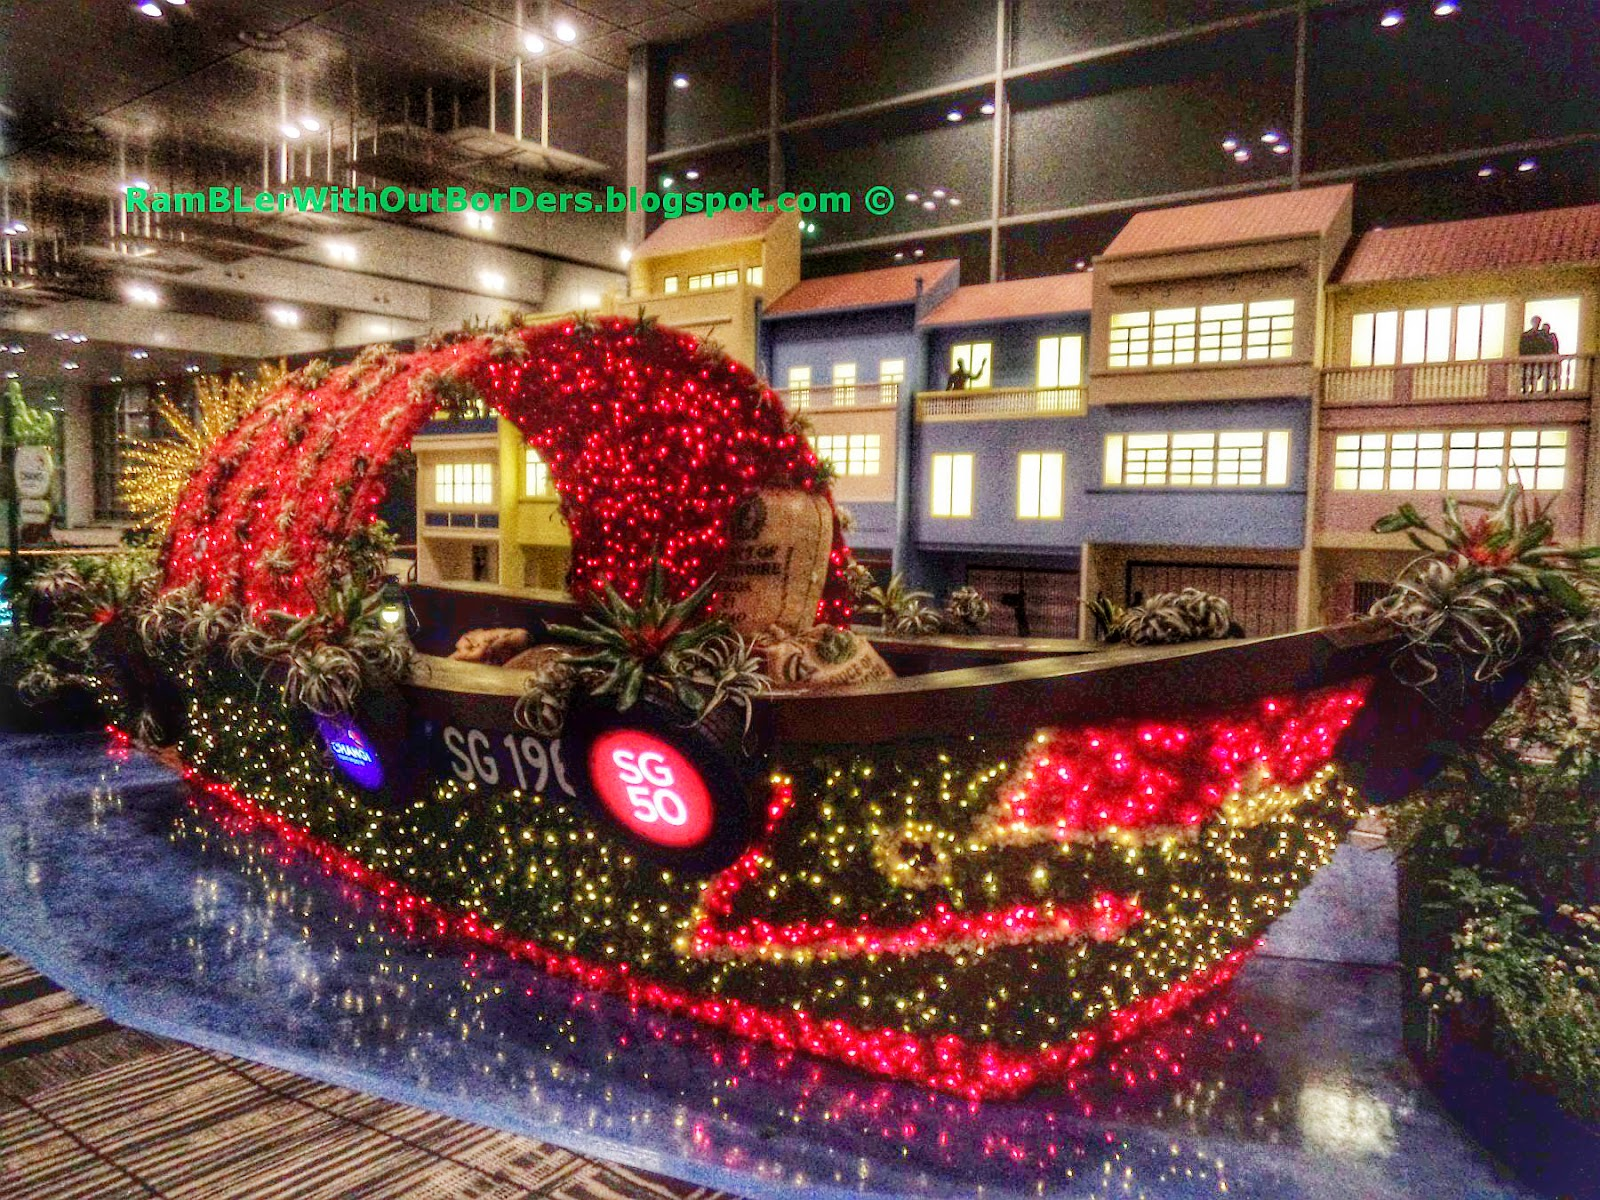 Bumboat topiary exhibit, Departure Hall, T3, Changi Airport, Singapore